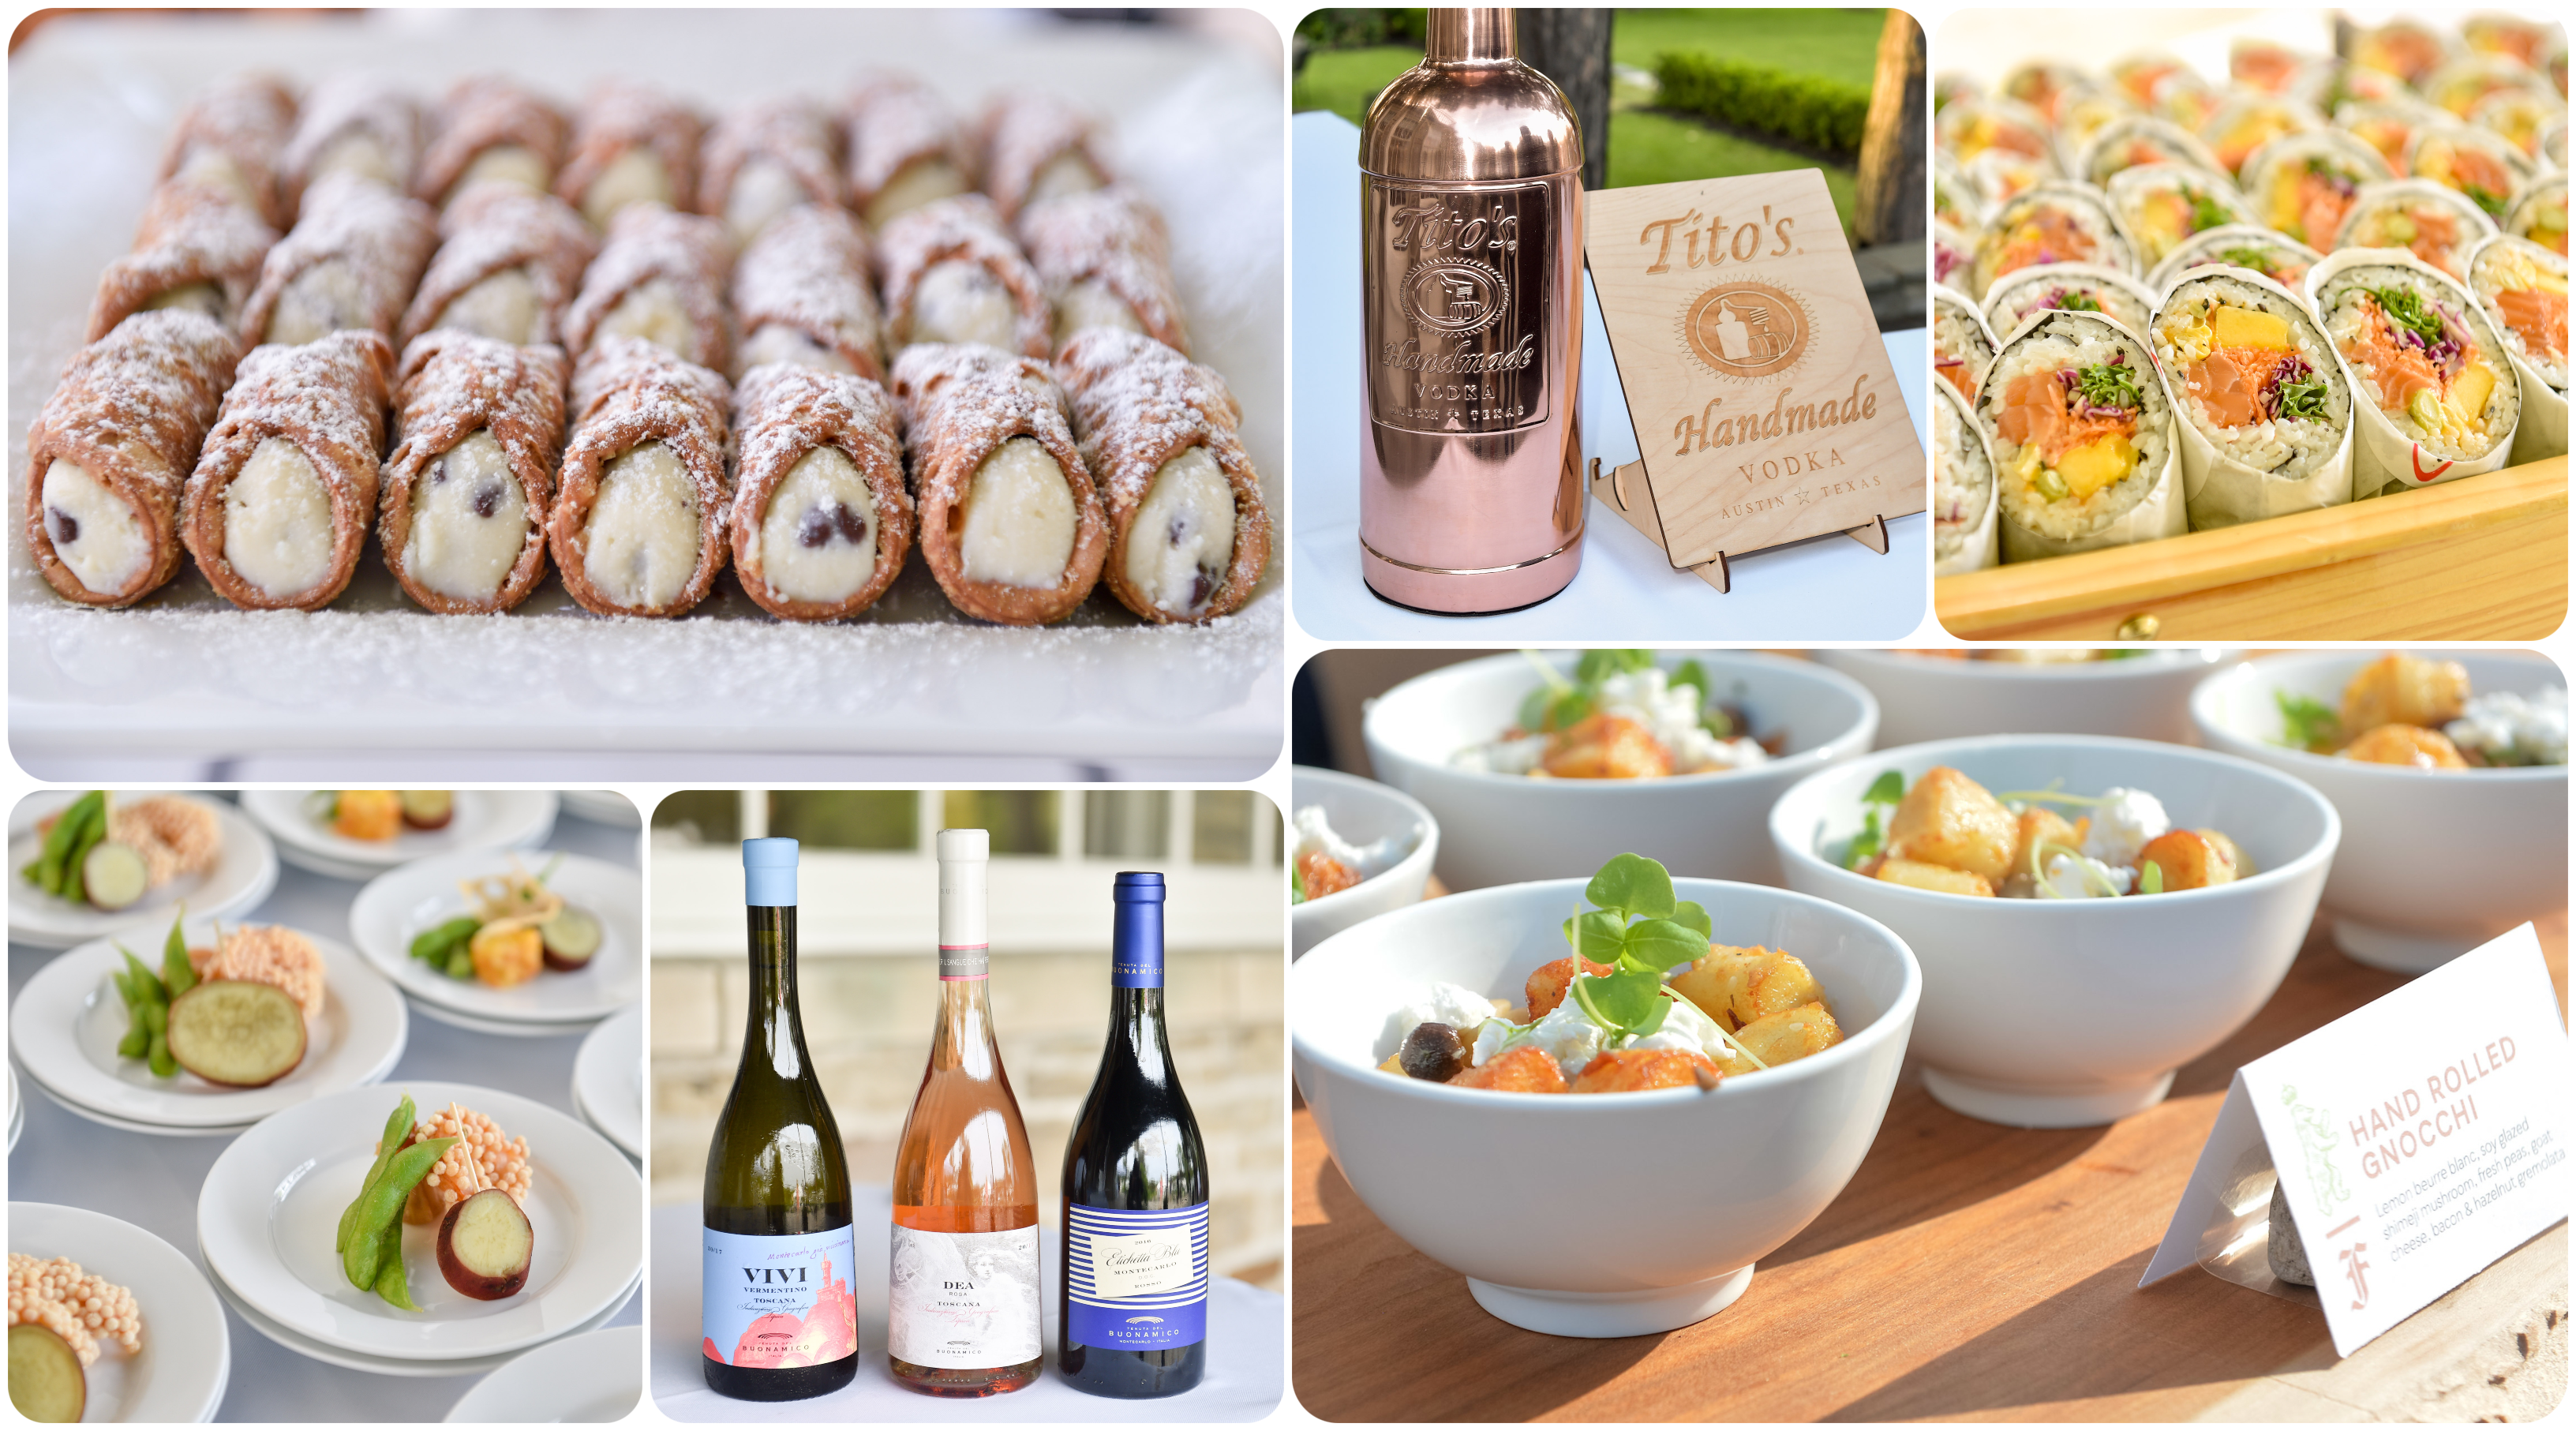 A gallery of six images, four of which are platters of food on display, one is a trio of wine bottles, and a third is a metallic rose gold bottle of vodka next to a sign.